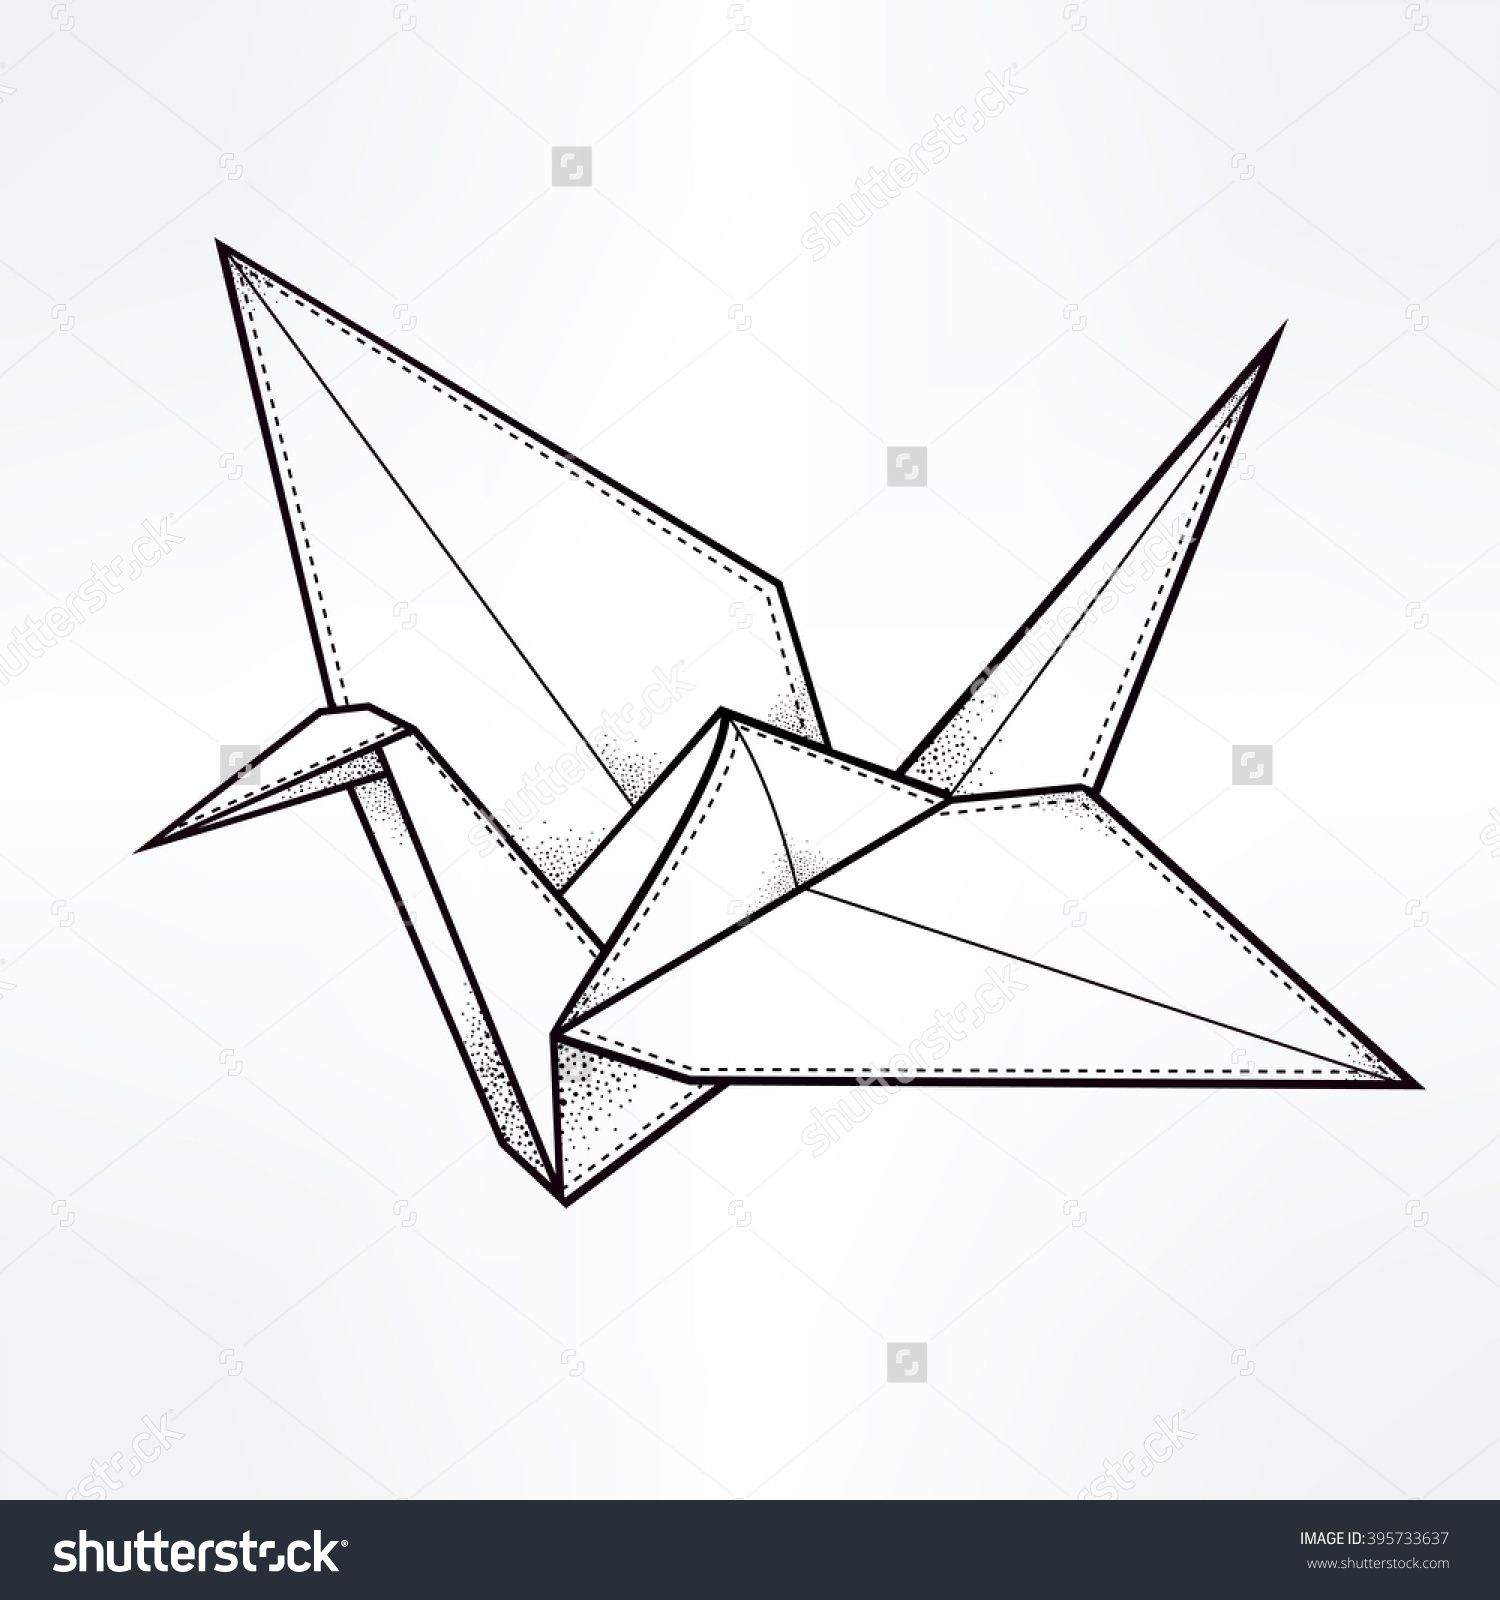 origami crane - Google Search | A Murder of Crows ... - photo#36